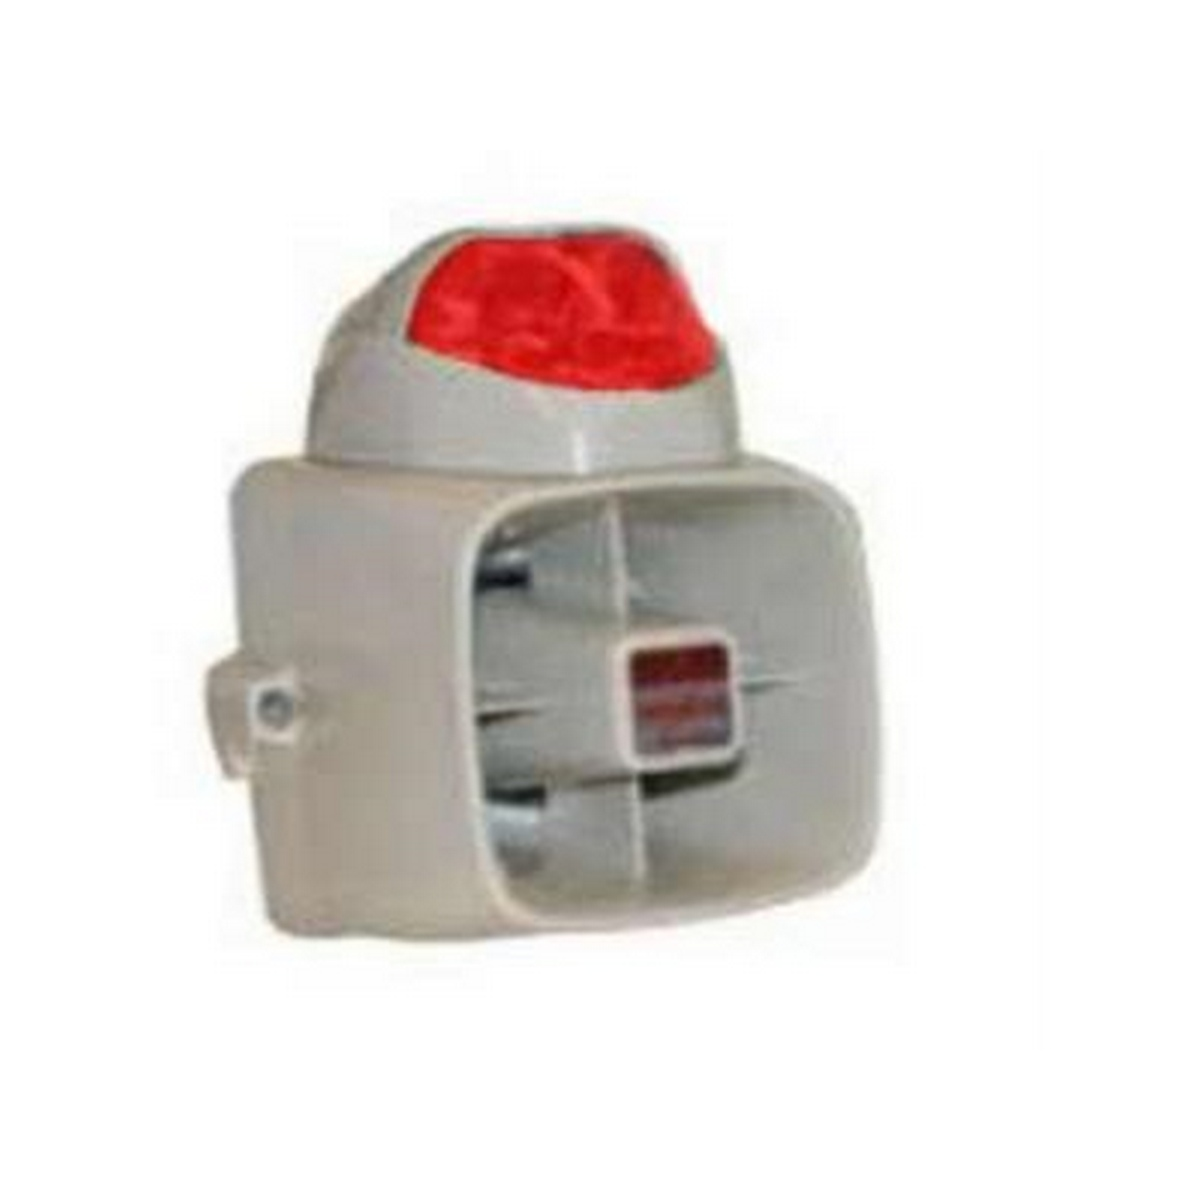 Armored self contained indoor/outdoor siren w/ red strobe